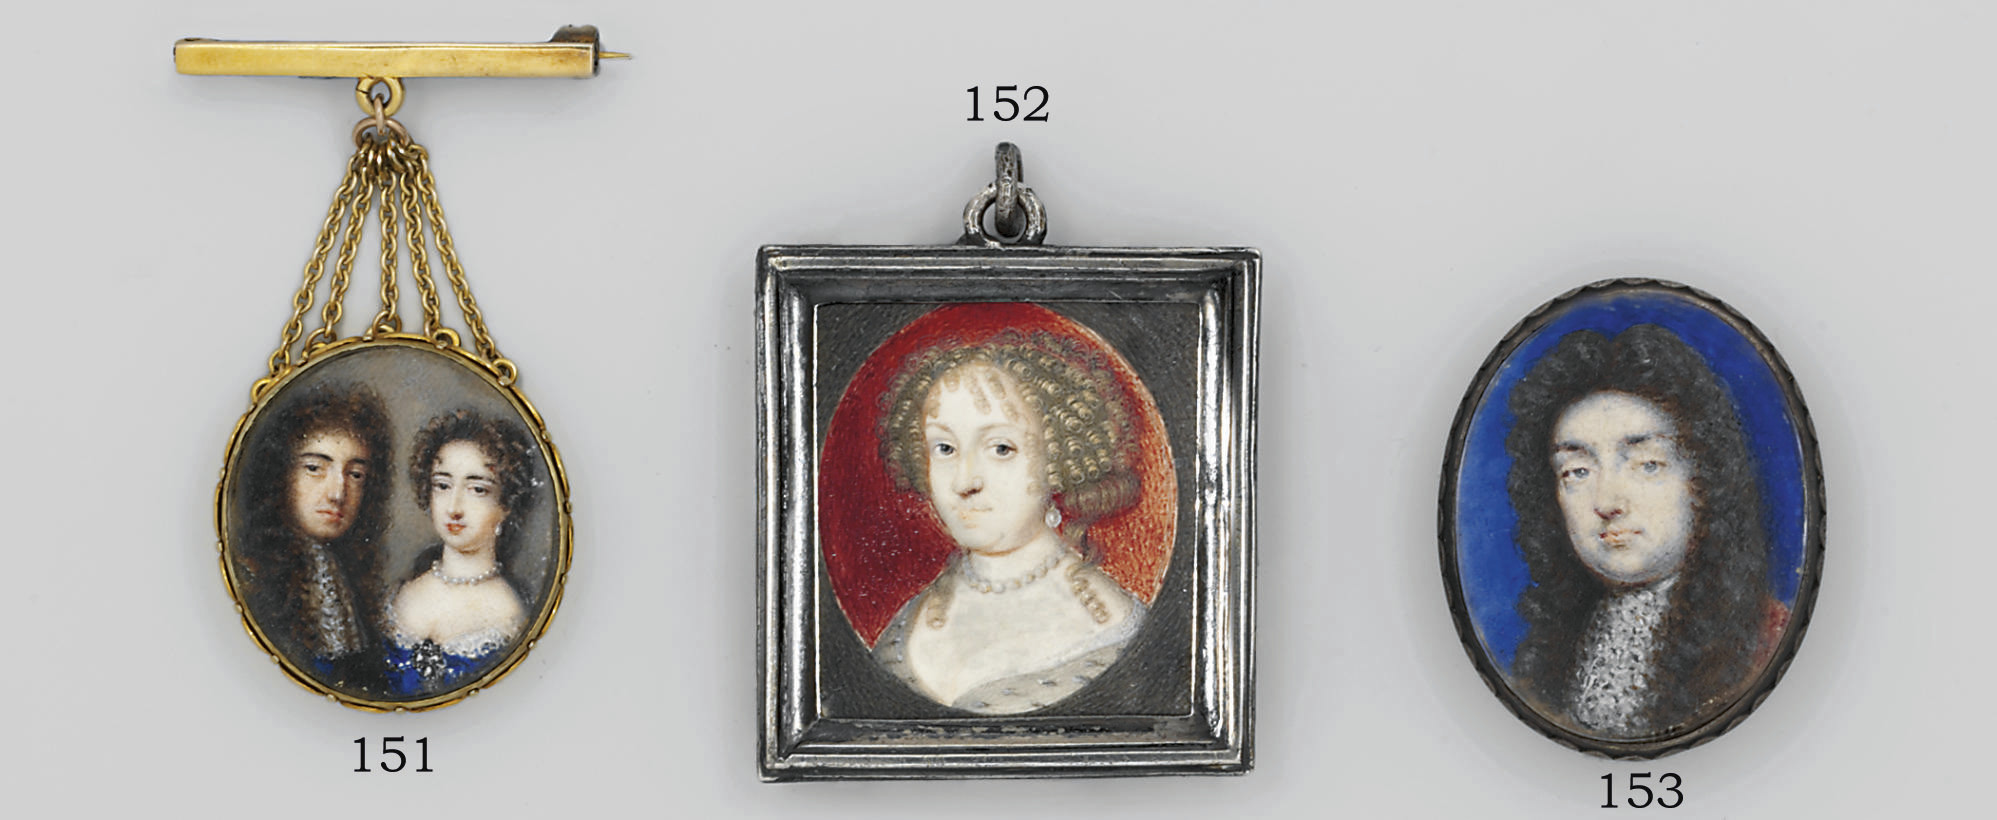 William III (1650-1702) and Mary II (1662-1694), he in blue coat and white lace jabot, long curling wig; she, in lace-bordered dress, get-set pearls at corsage, pearl necklace, drop-pearl earring, curling dark hair